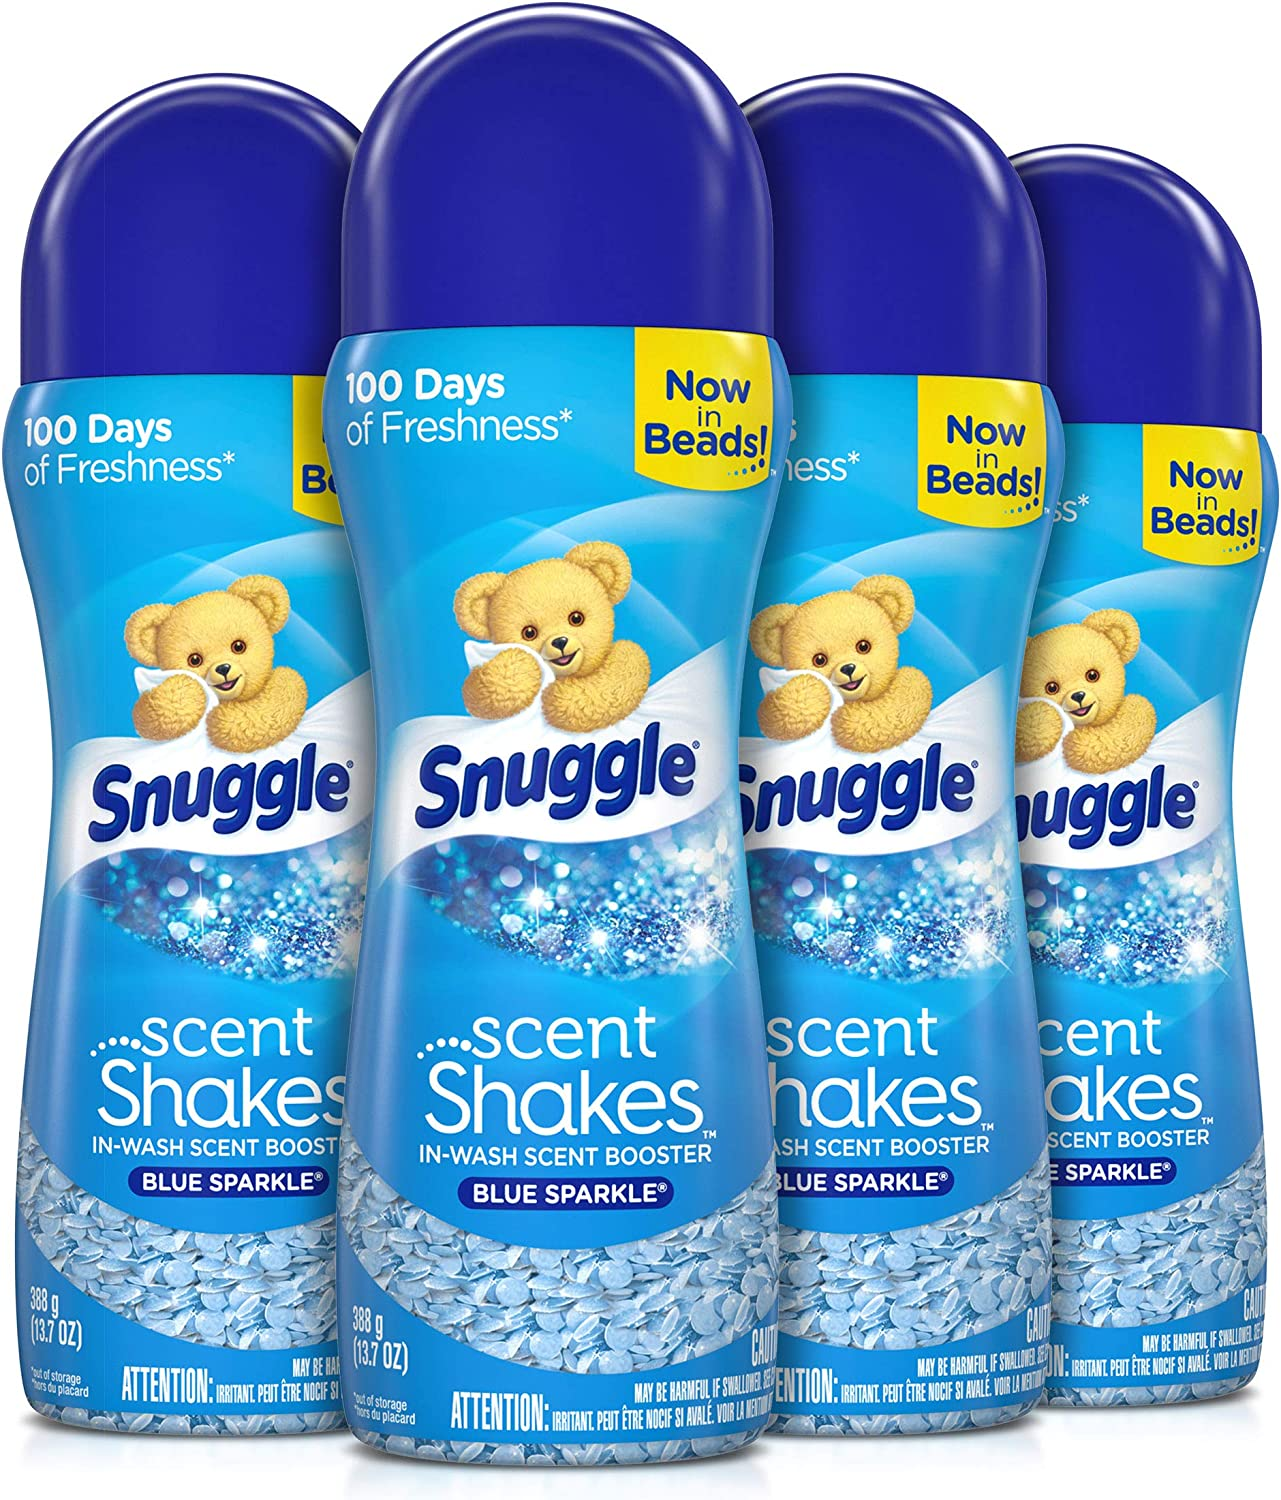 Snuggle Scent Shakes in-Wash Scent Booster Beads, Blue Sparkle, 13.7 Ounce (Pack of 4)